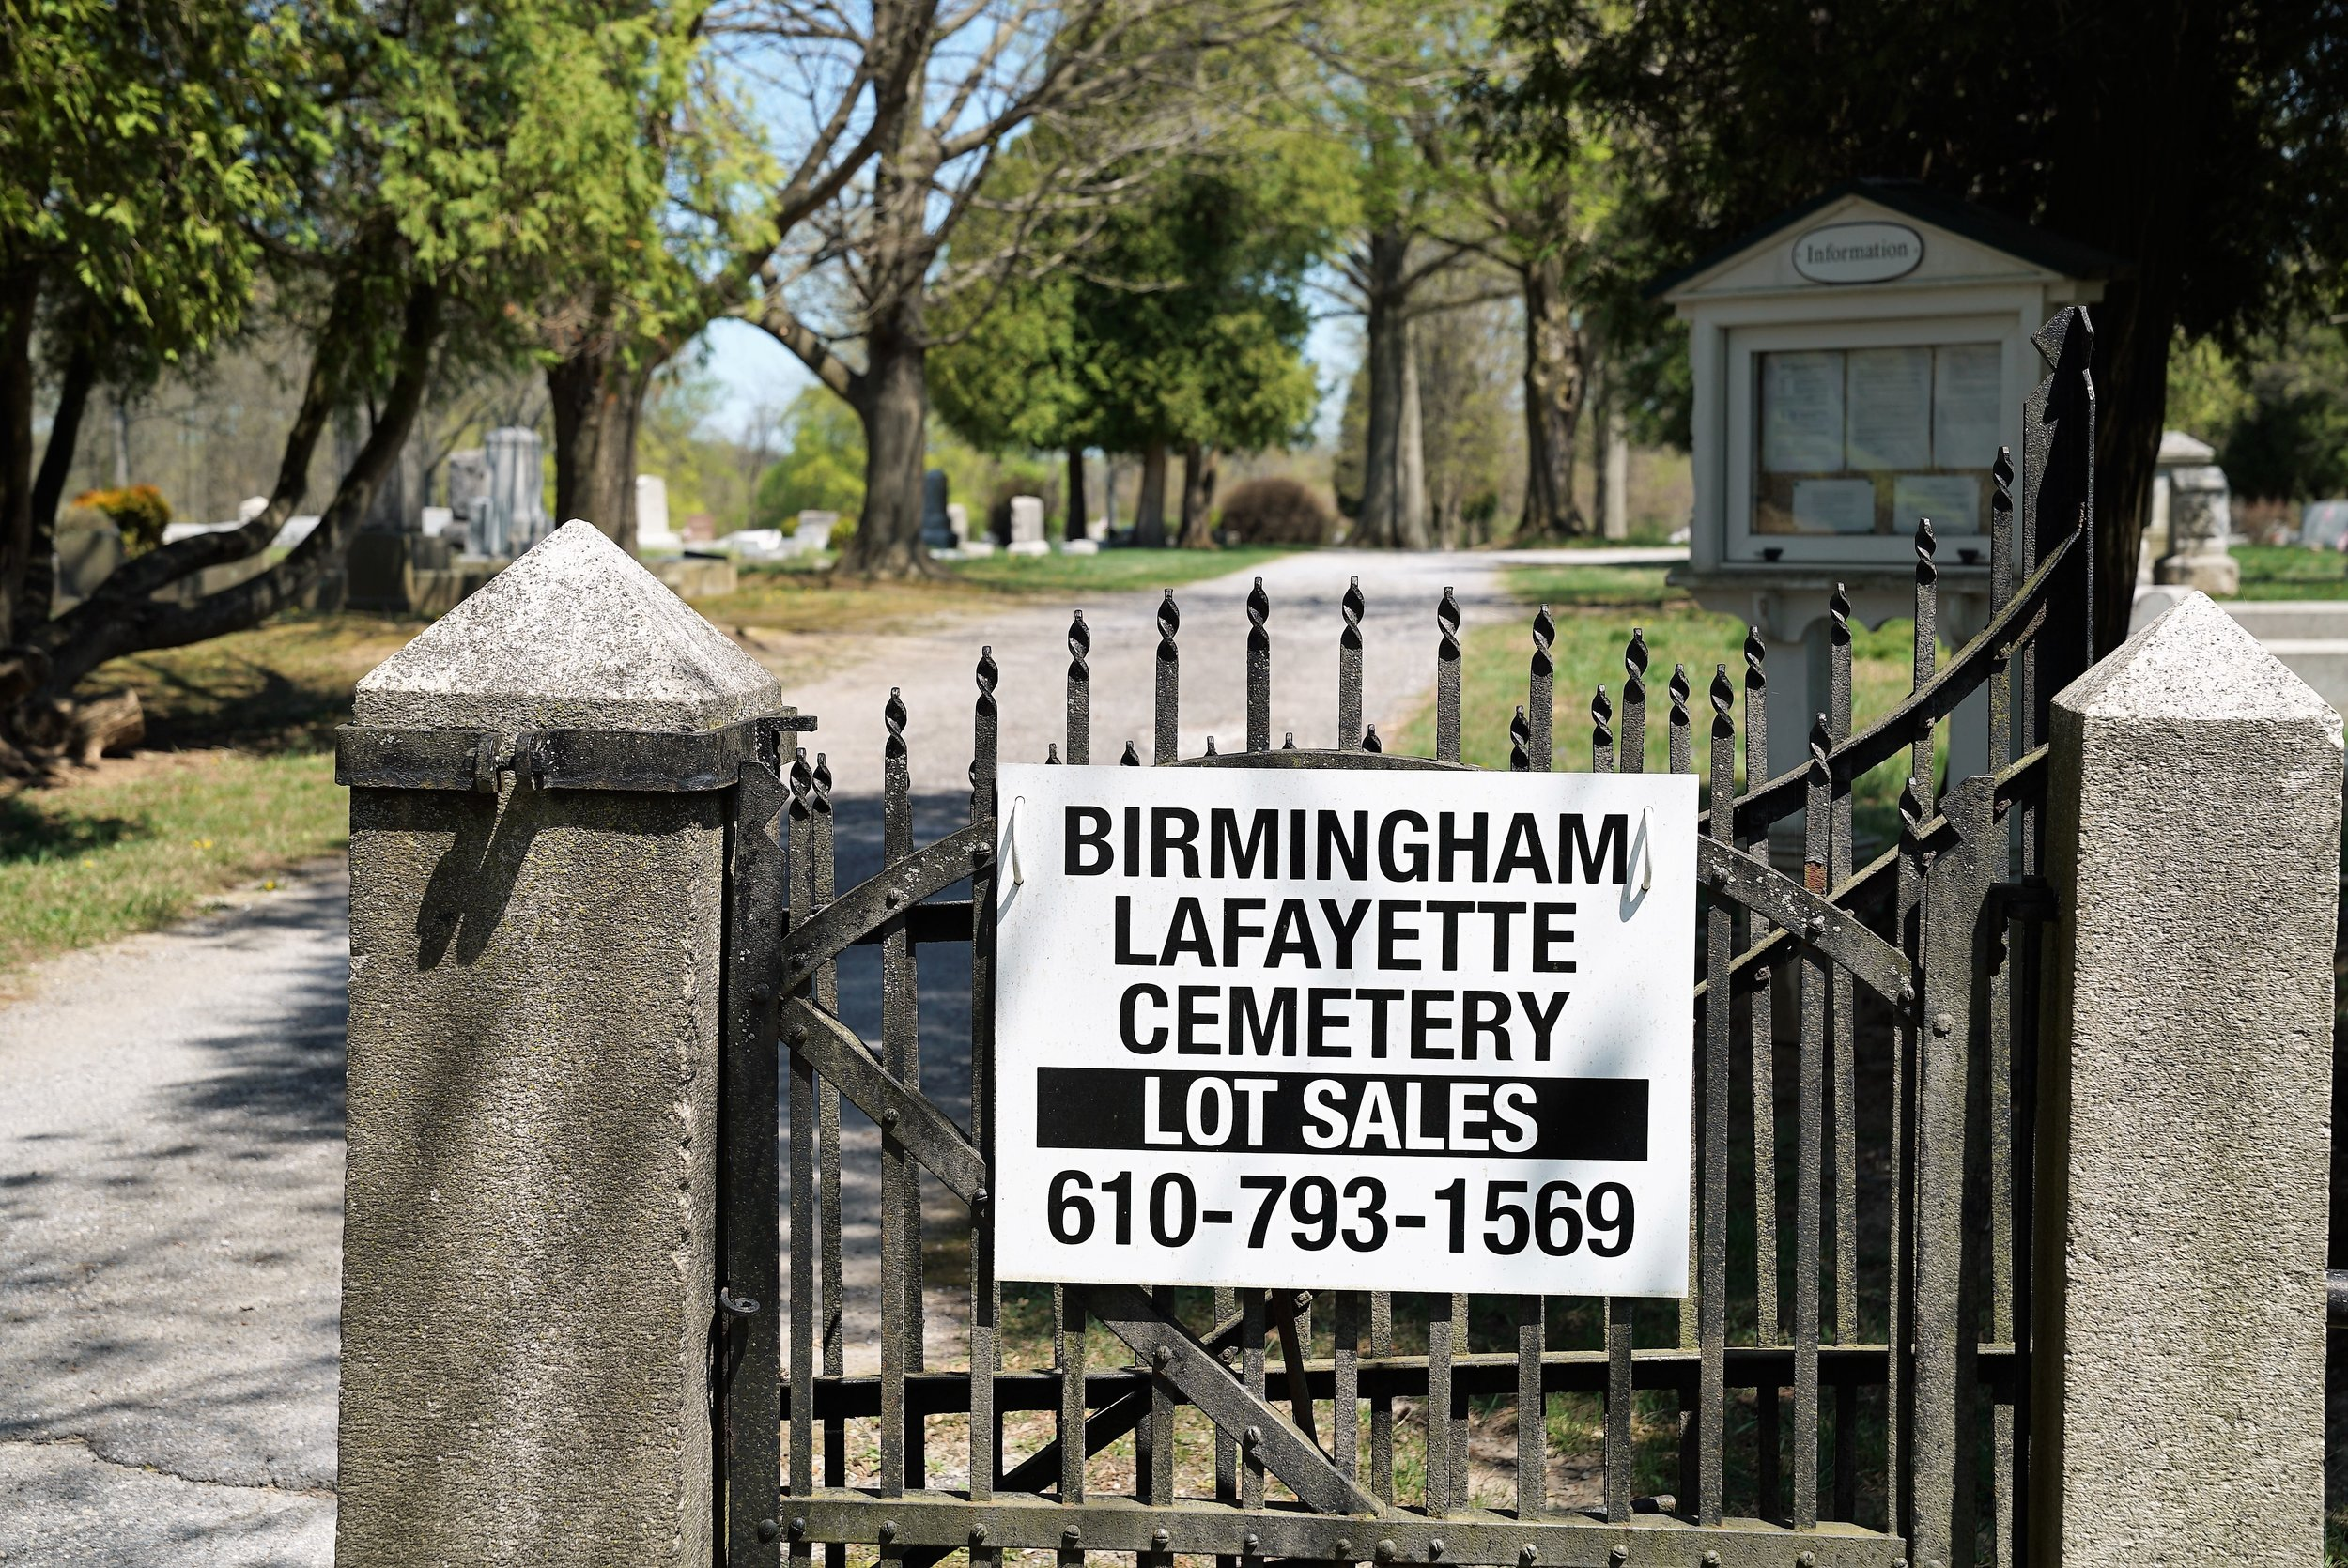 Burial lots are still available: Birmingham Lafayette Cemetery. West Chester, Pennsylvania.